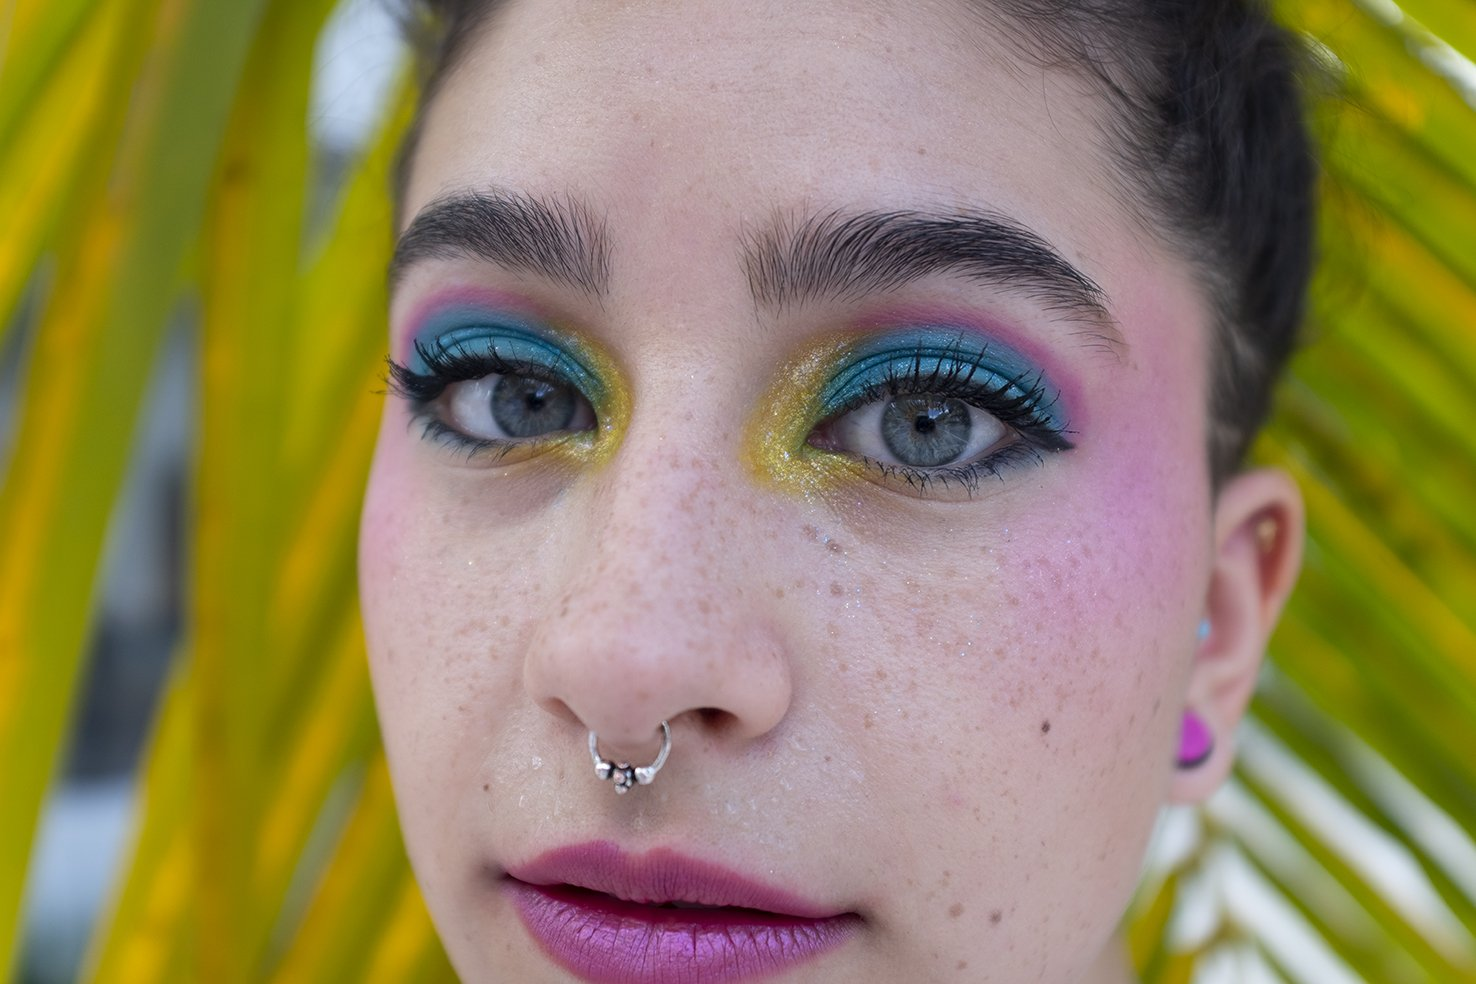 """The artist presents her intimate and cultural research through the shot """"Midtown"""", a macro image of made up eyes, which ponders on both daily life and interactions with """"the other and diversity"""". She investigates the dynamics that are created through the lens of the camera."""